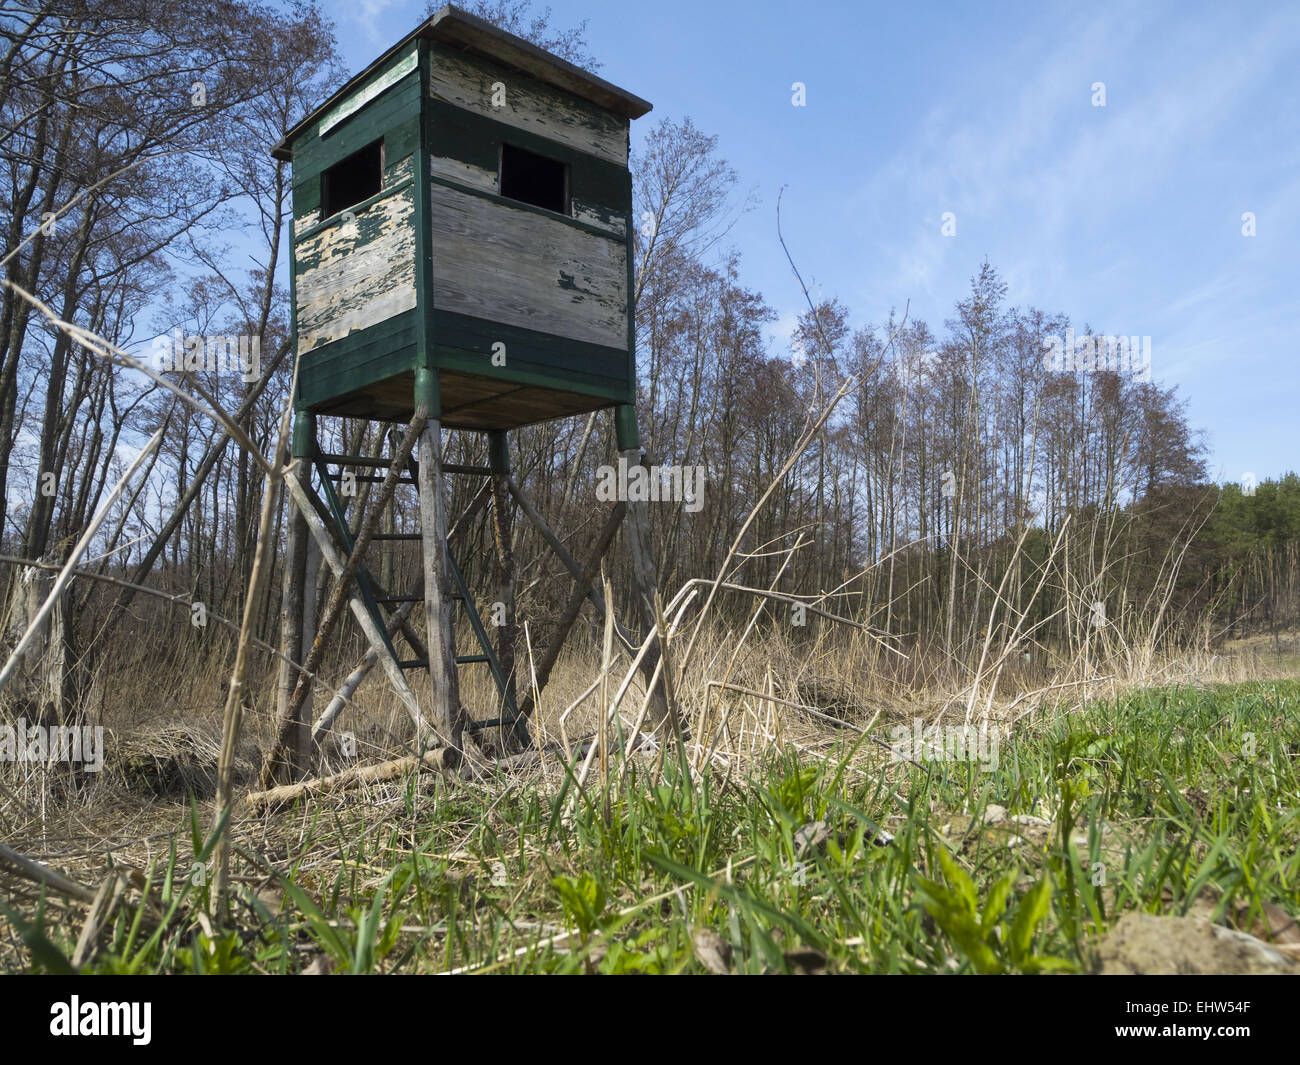 observation tower - Stock Image